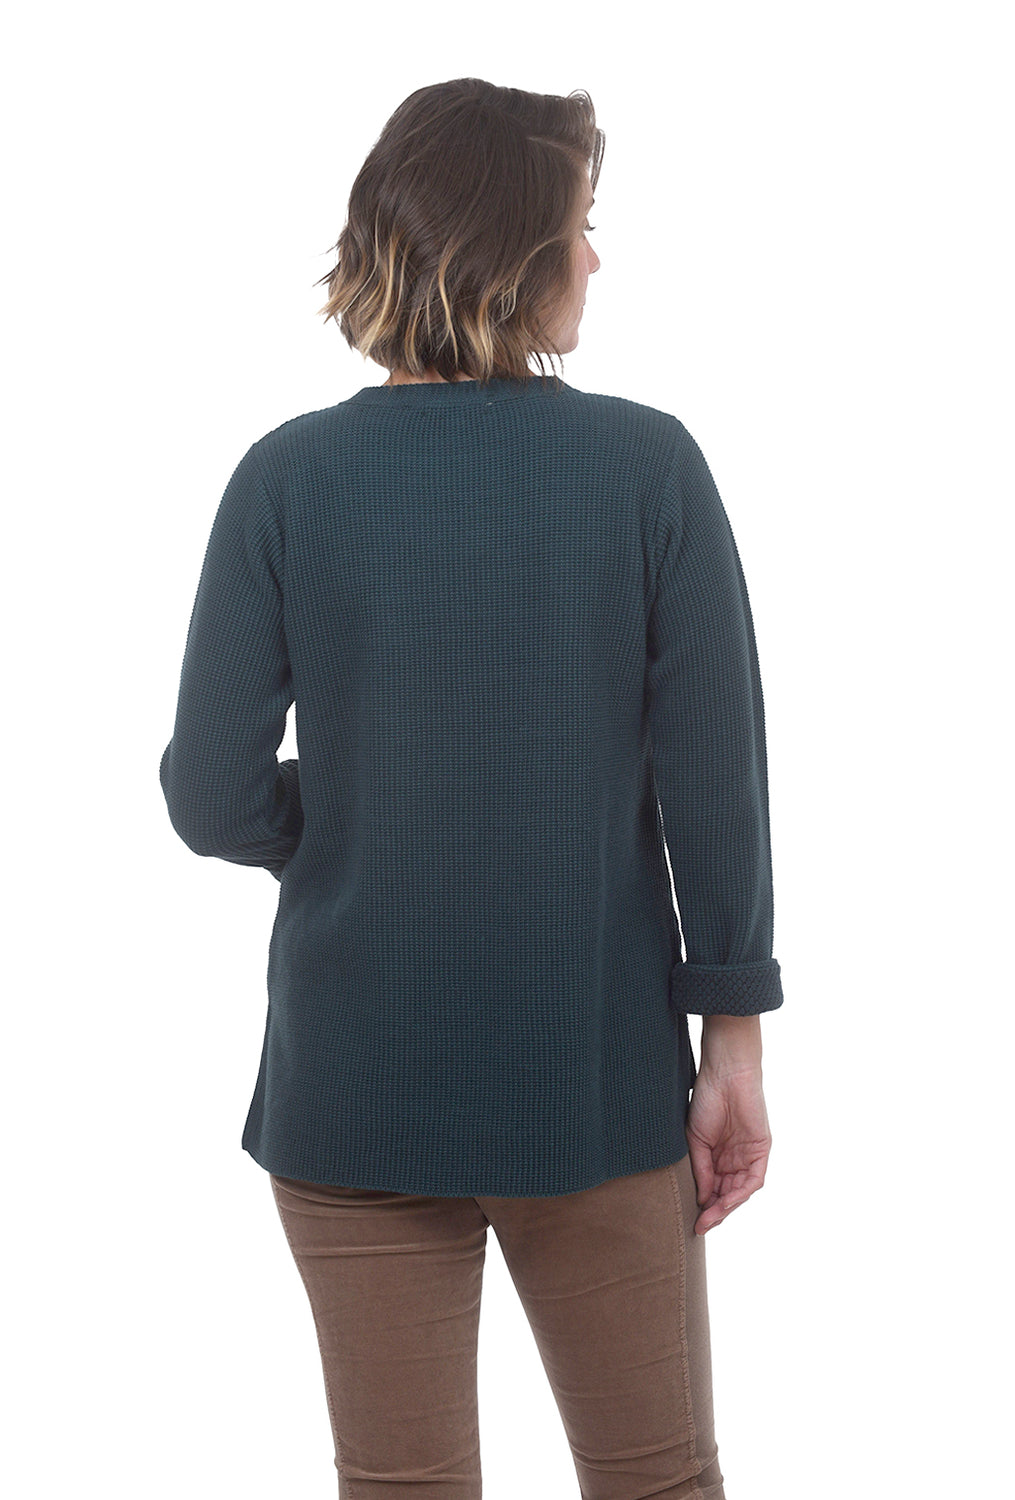 Cuffed Sleeve Sweater, Green